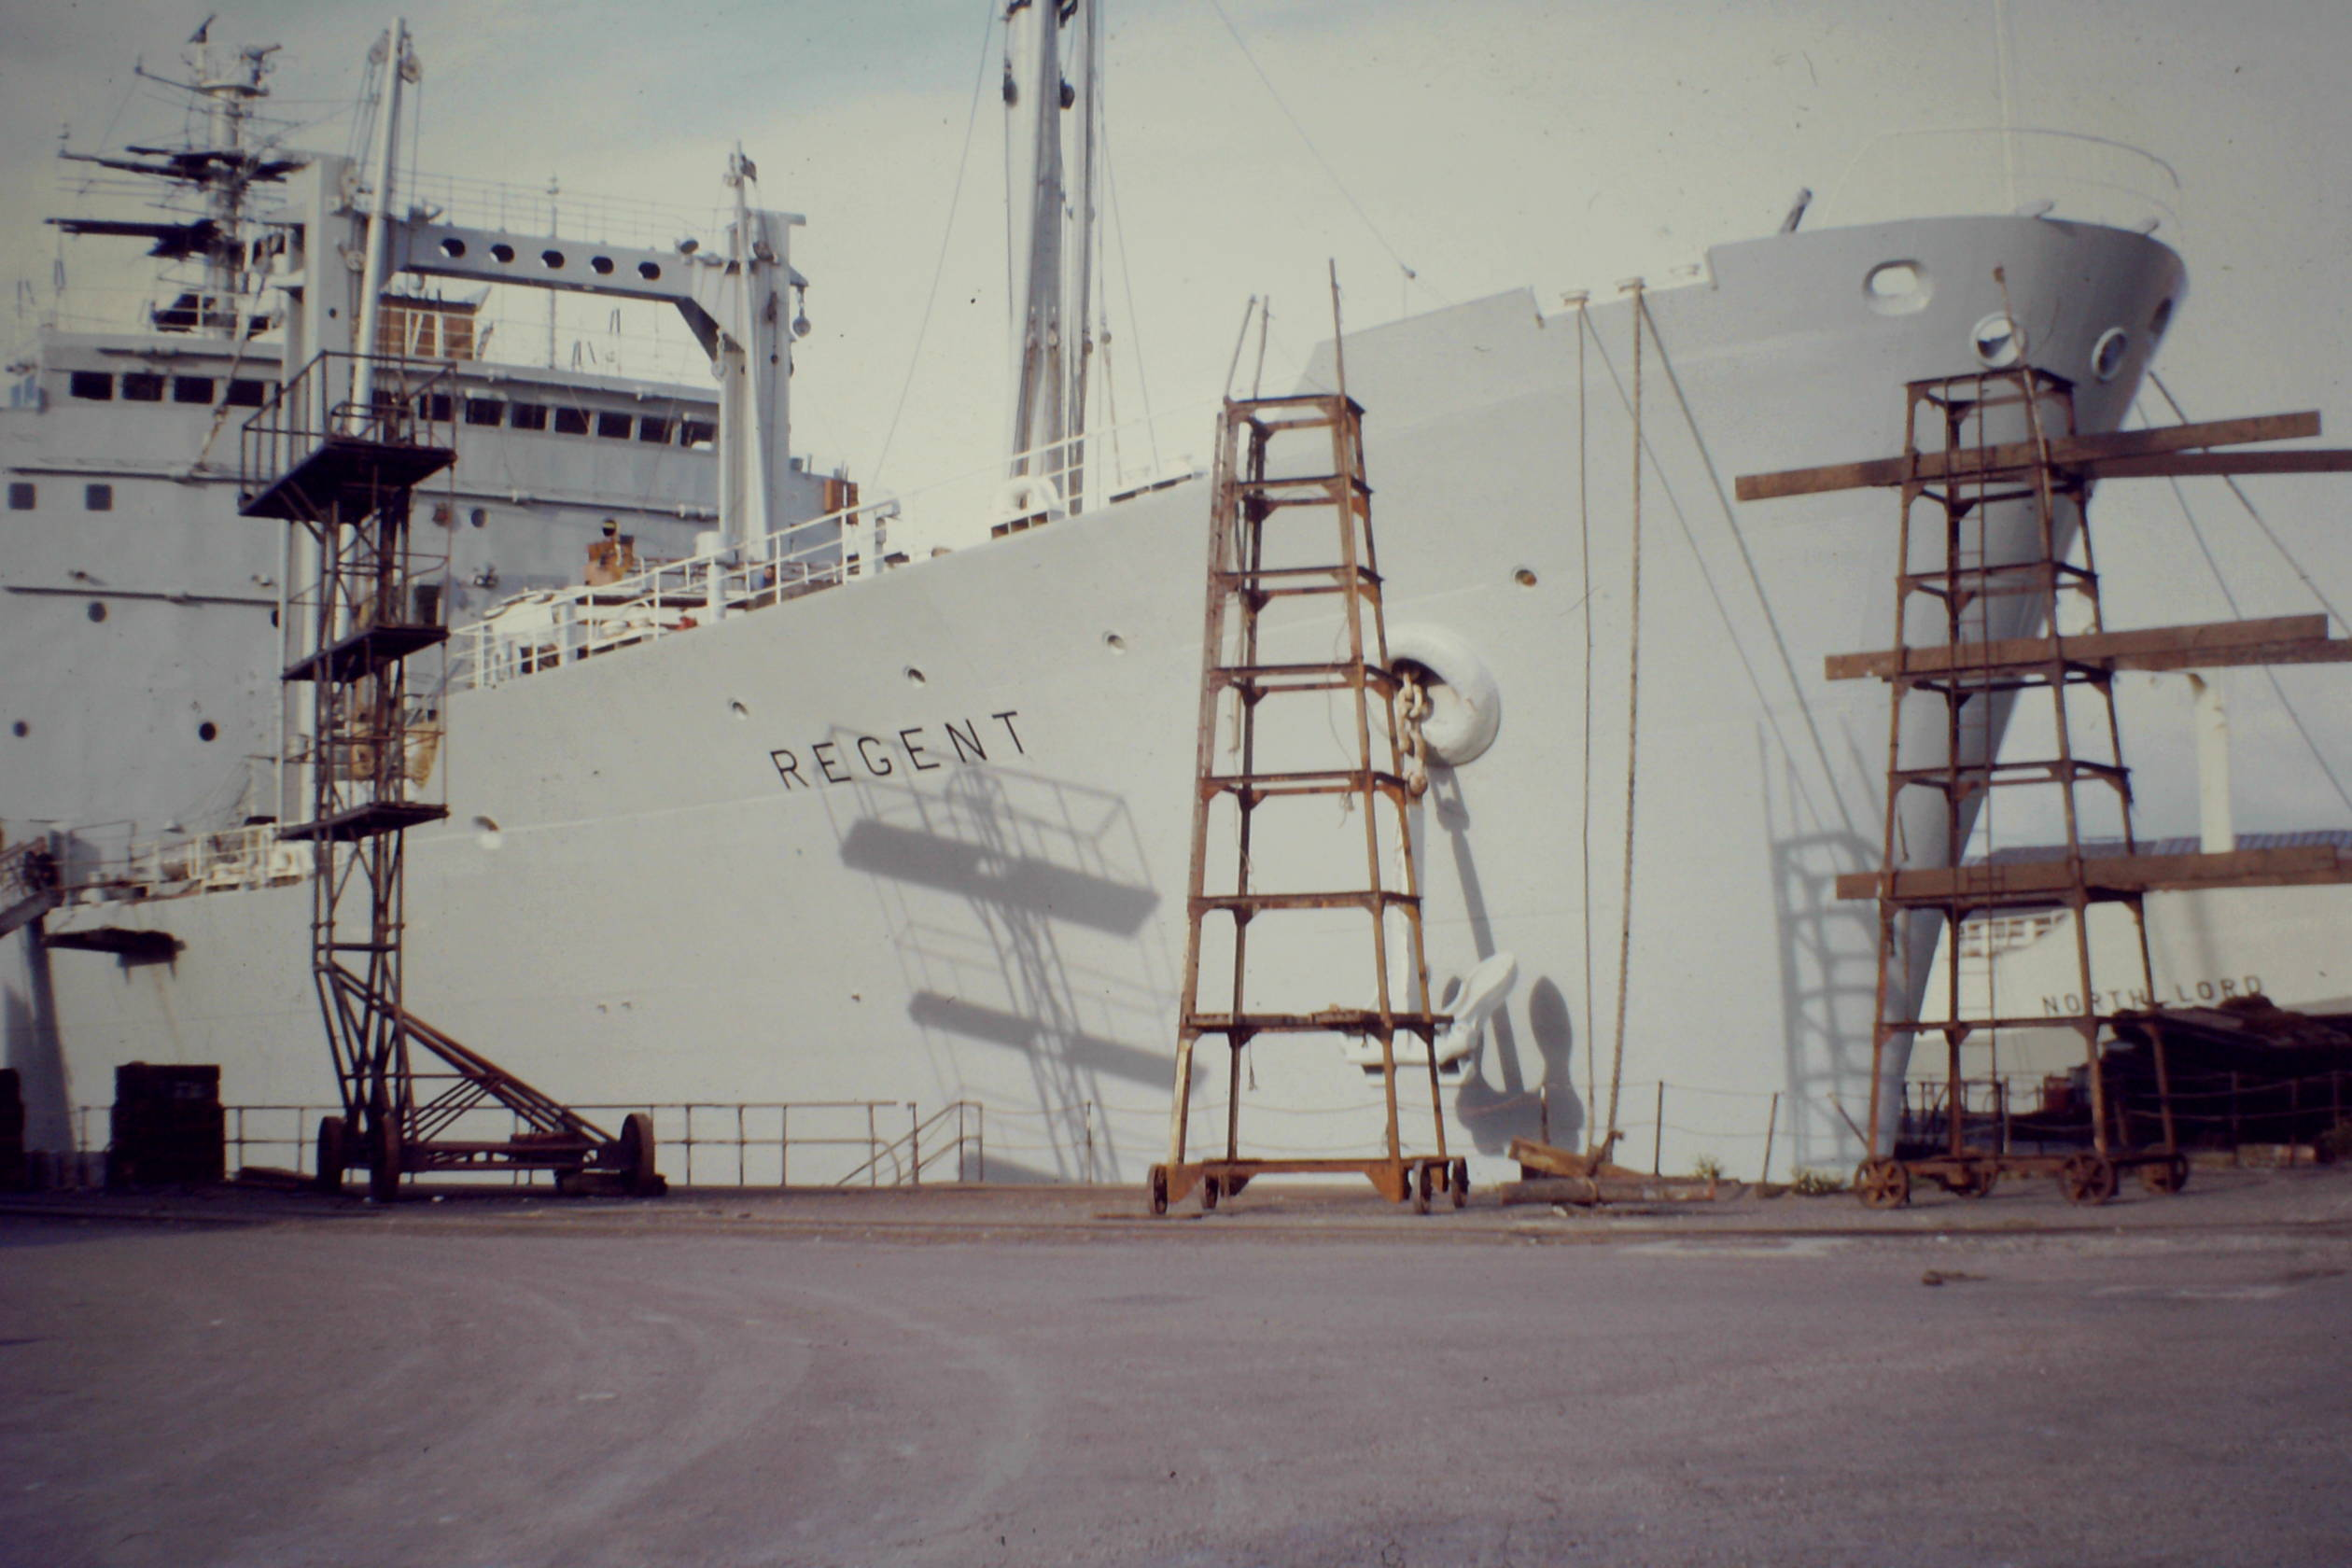 RFA REGENT in dry dock Falmouth